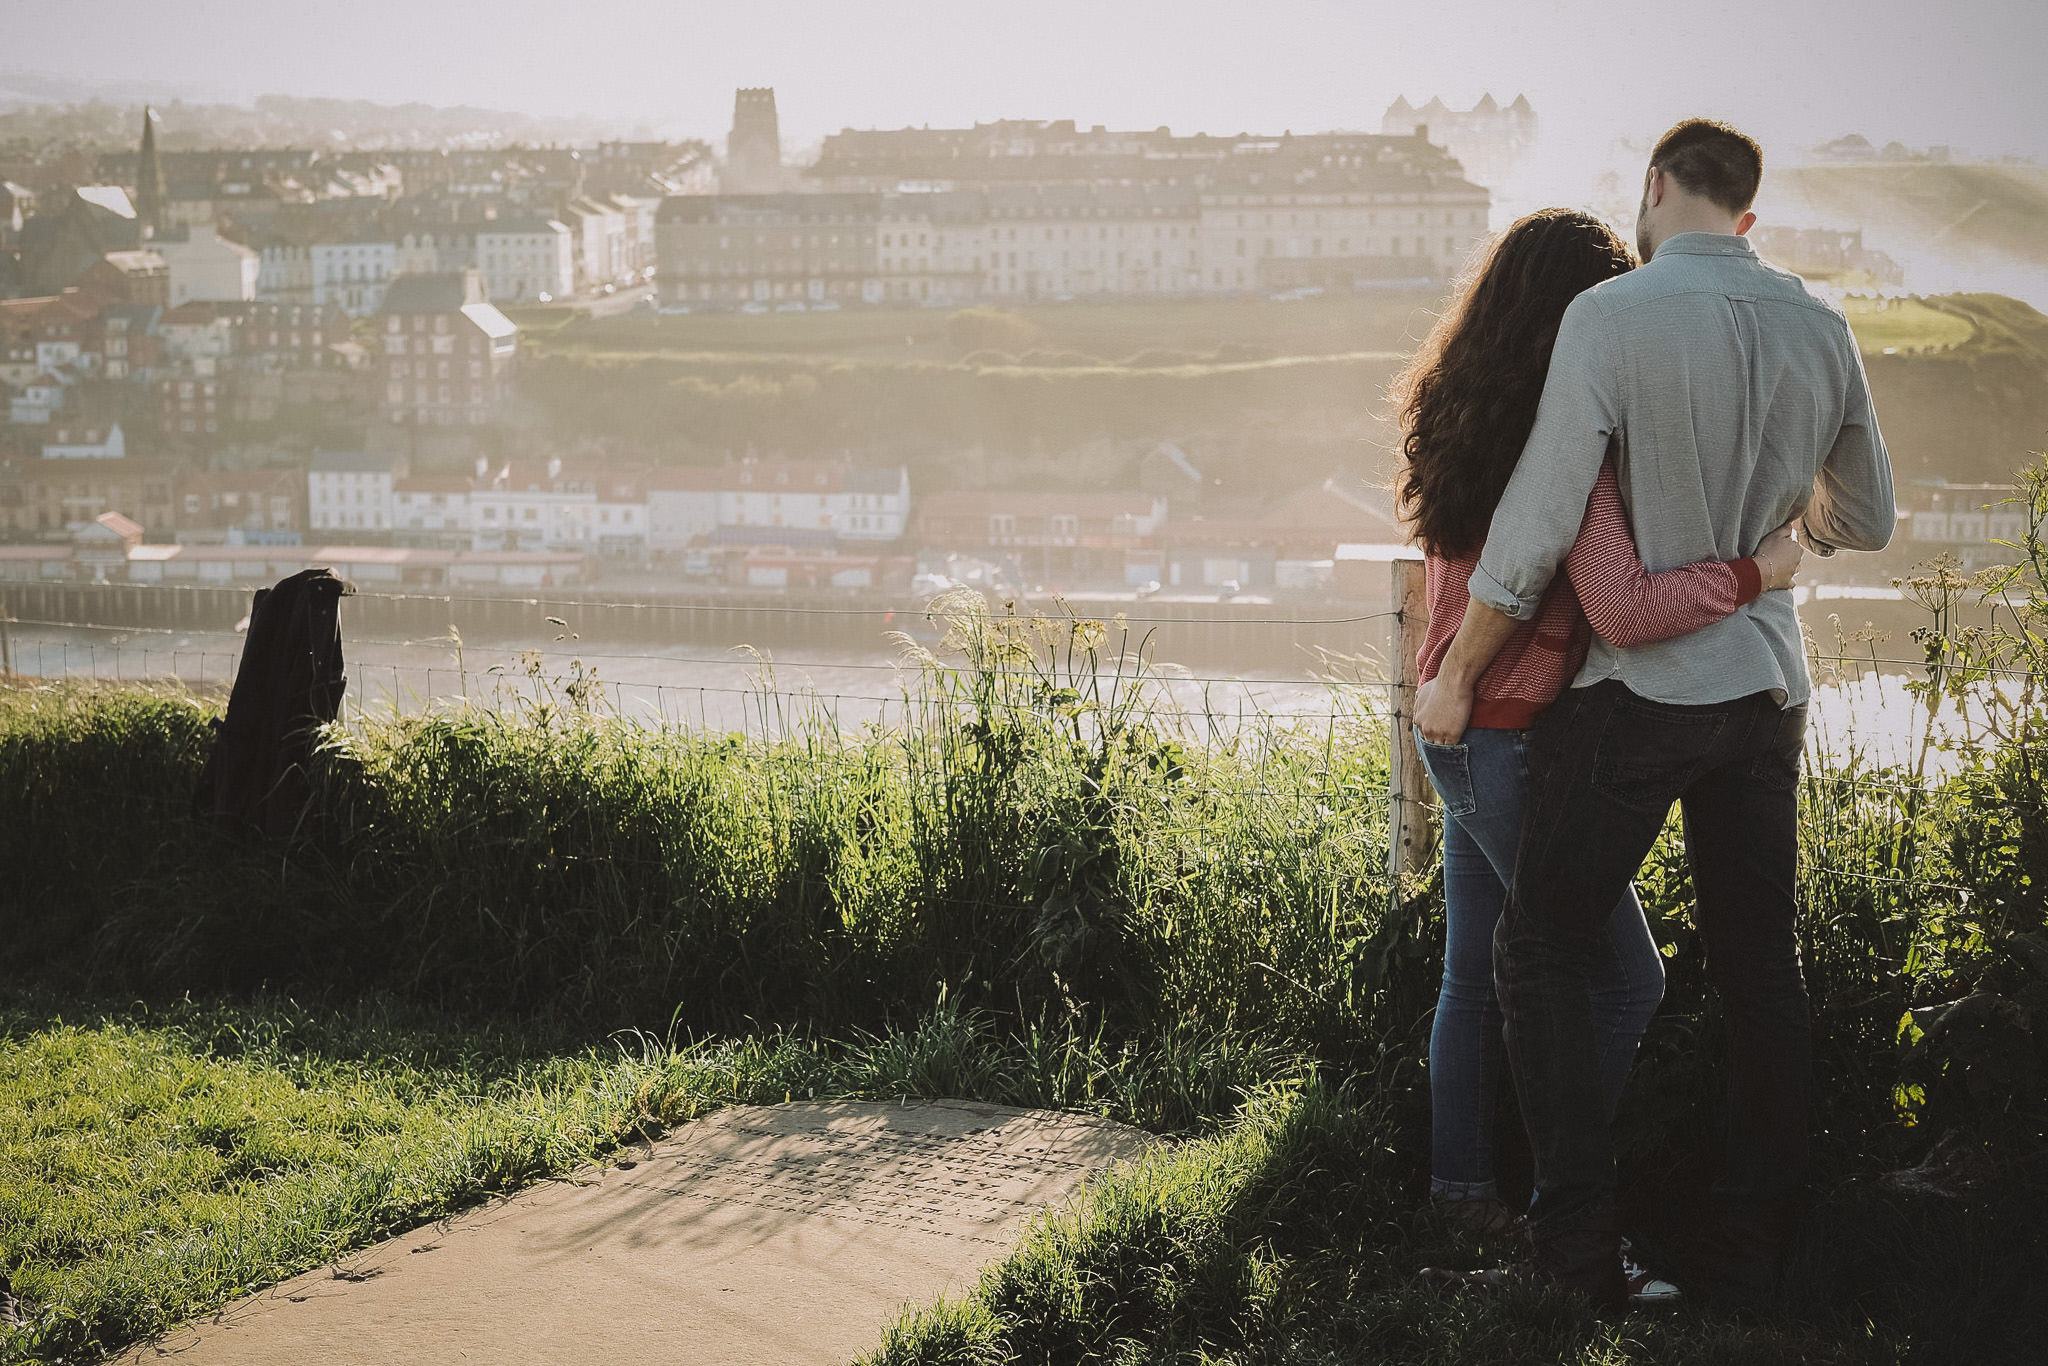 Katy and Tom cuddle while looking out over Whitby Habour in Yorkshire on a pre-wedding engagement shoot by Barry Forshaw